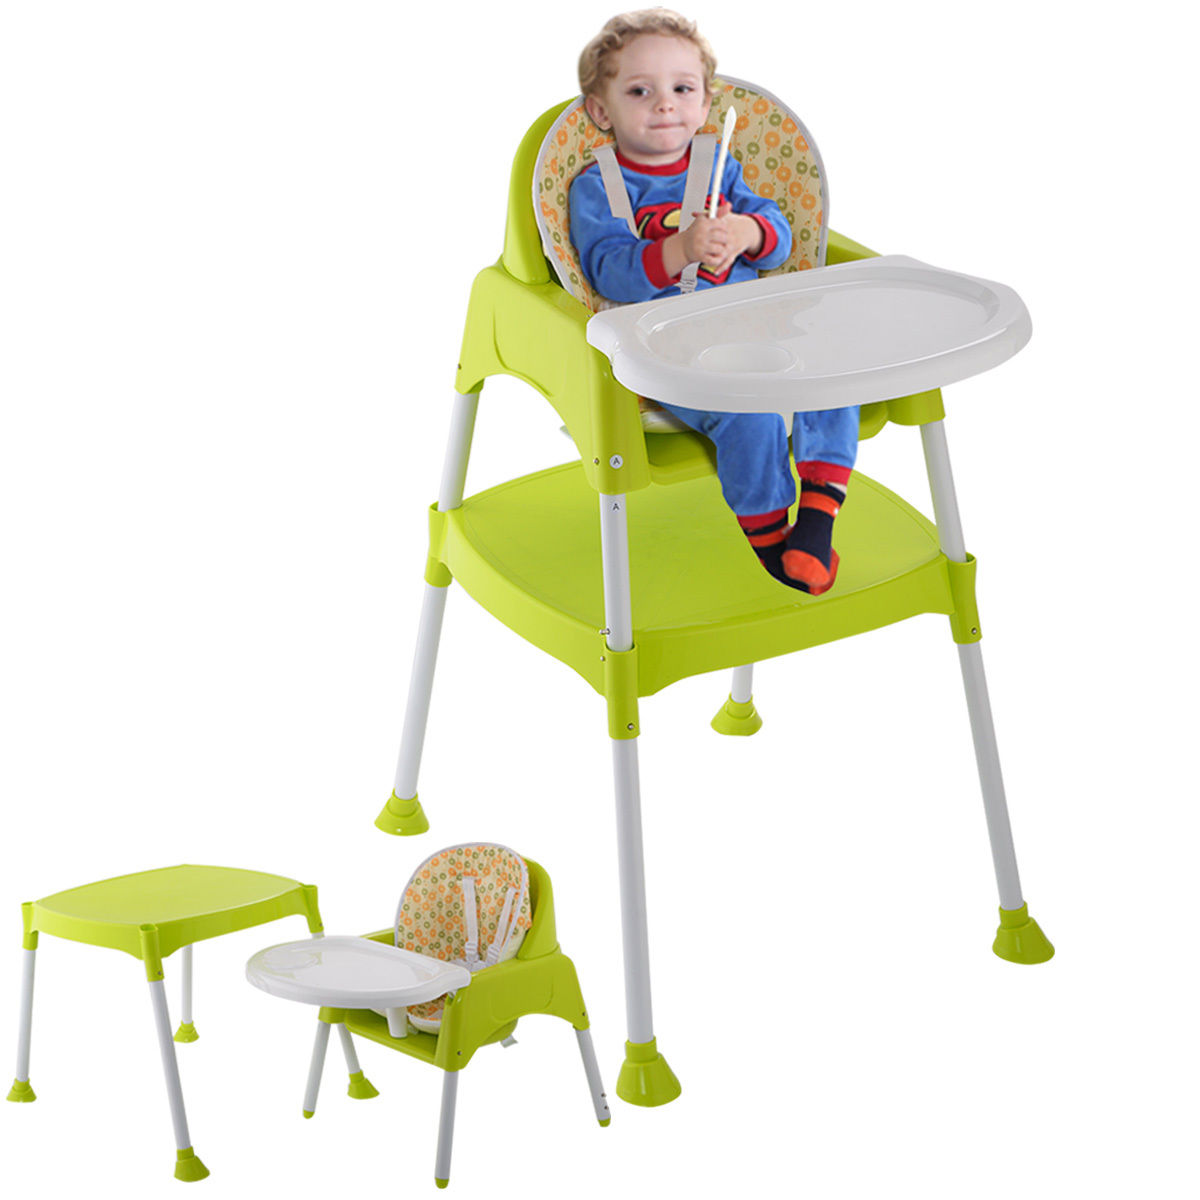 Costway Green 3 in 1 Baby High Chair Convertible Table Seat Booster Toddler Feeding Highchair by Costway